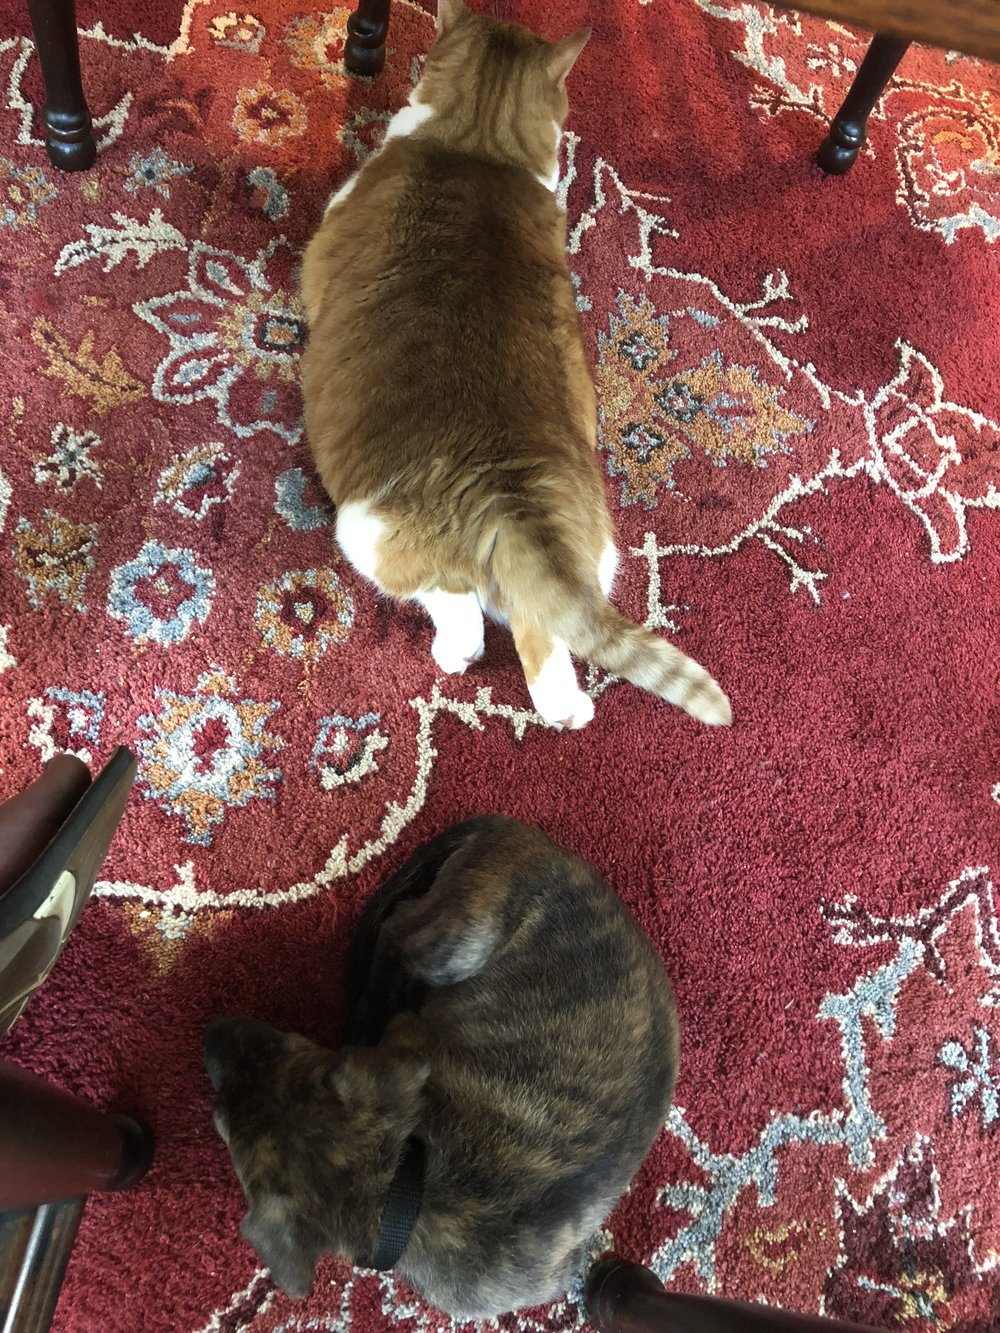 Bonnie thinks she and Cleo the cat are friends.